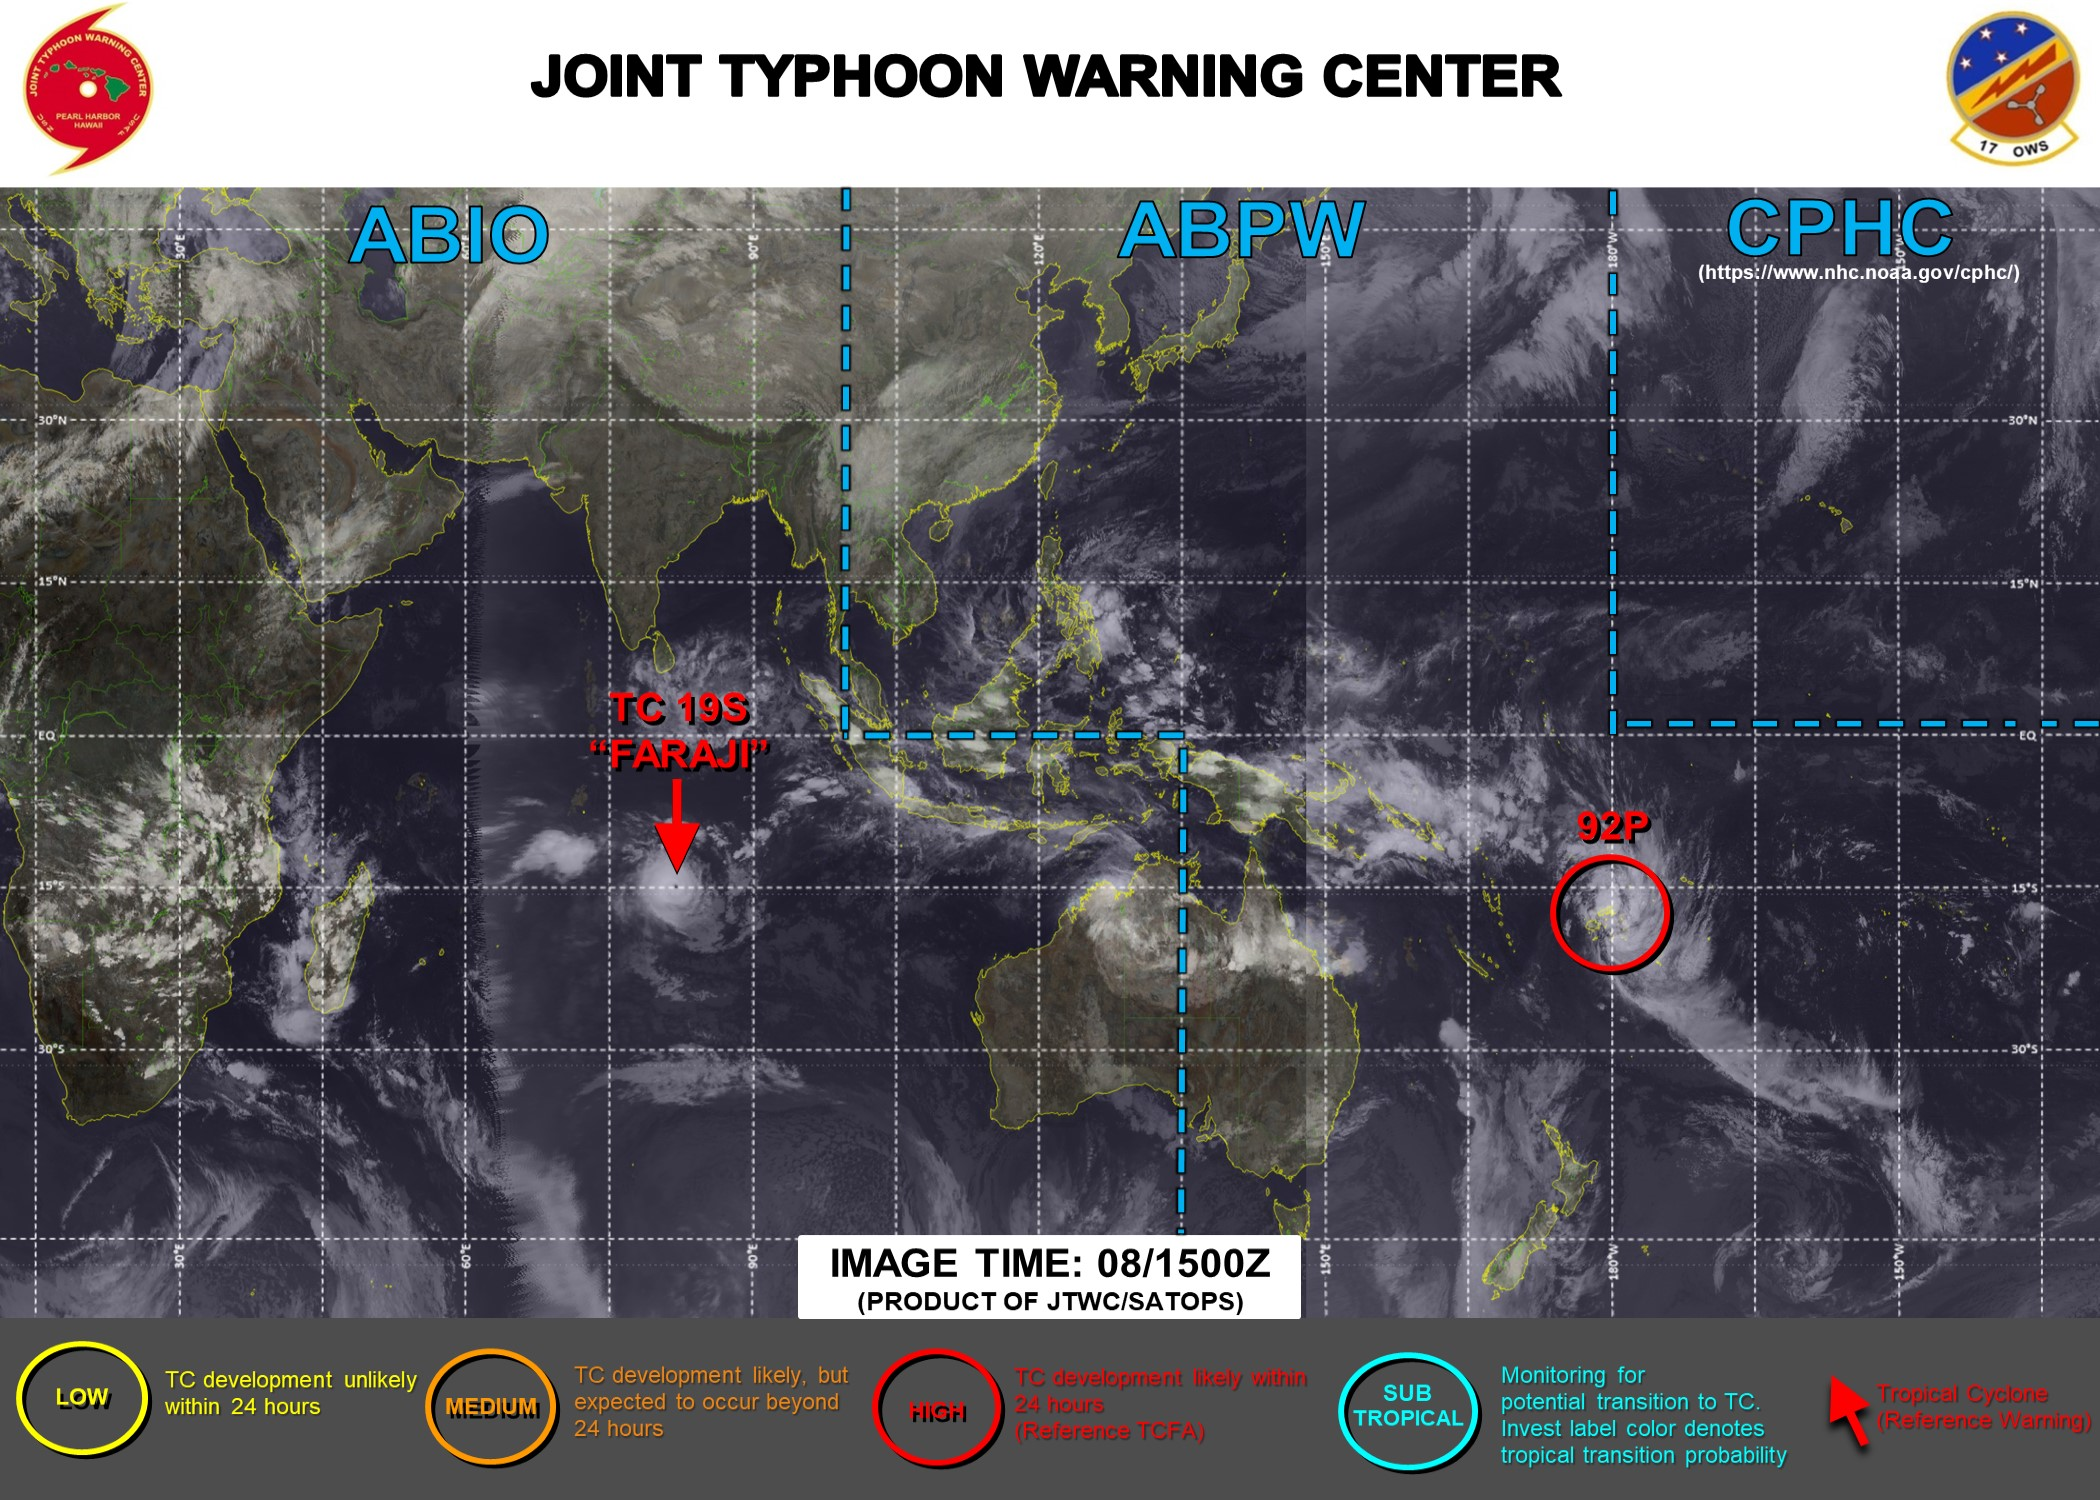 08/15UTC. JTWC IS ISSUING 12HOURLY WARNINGS ON TC 19S(FARAJI). INVEST 92P IS UP-GRADED TO HIGH. 3HOURLY SATELLITE BULLETINS ARE PROVIDED FOR 19S AND 92P.